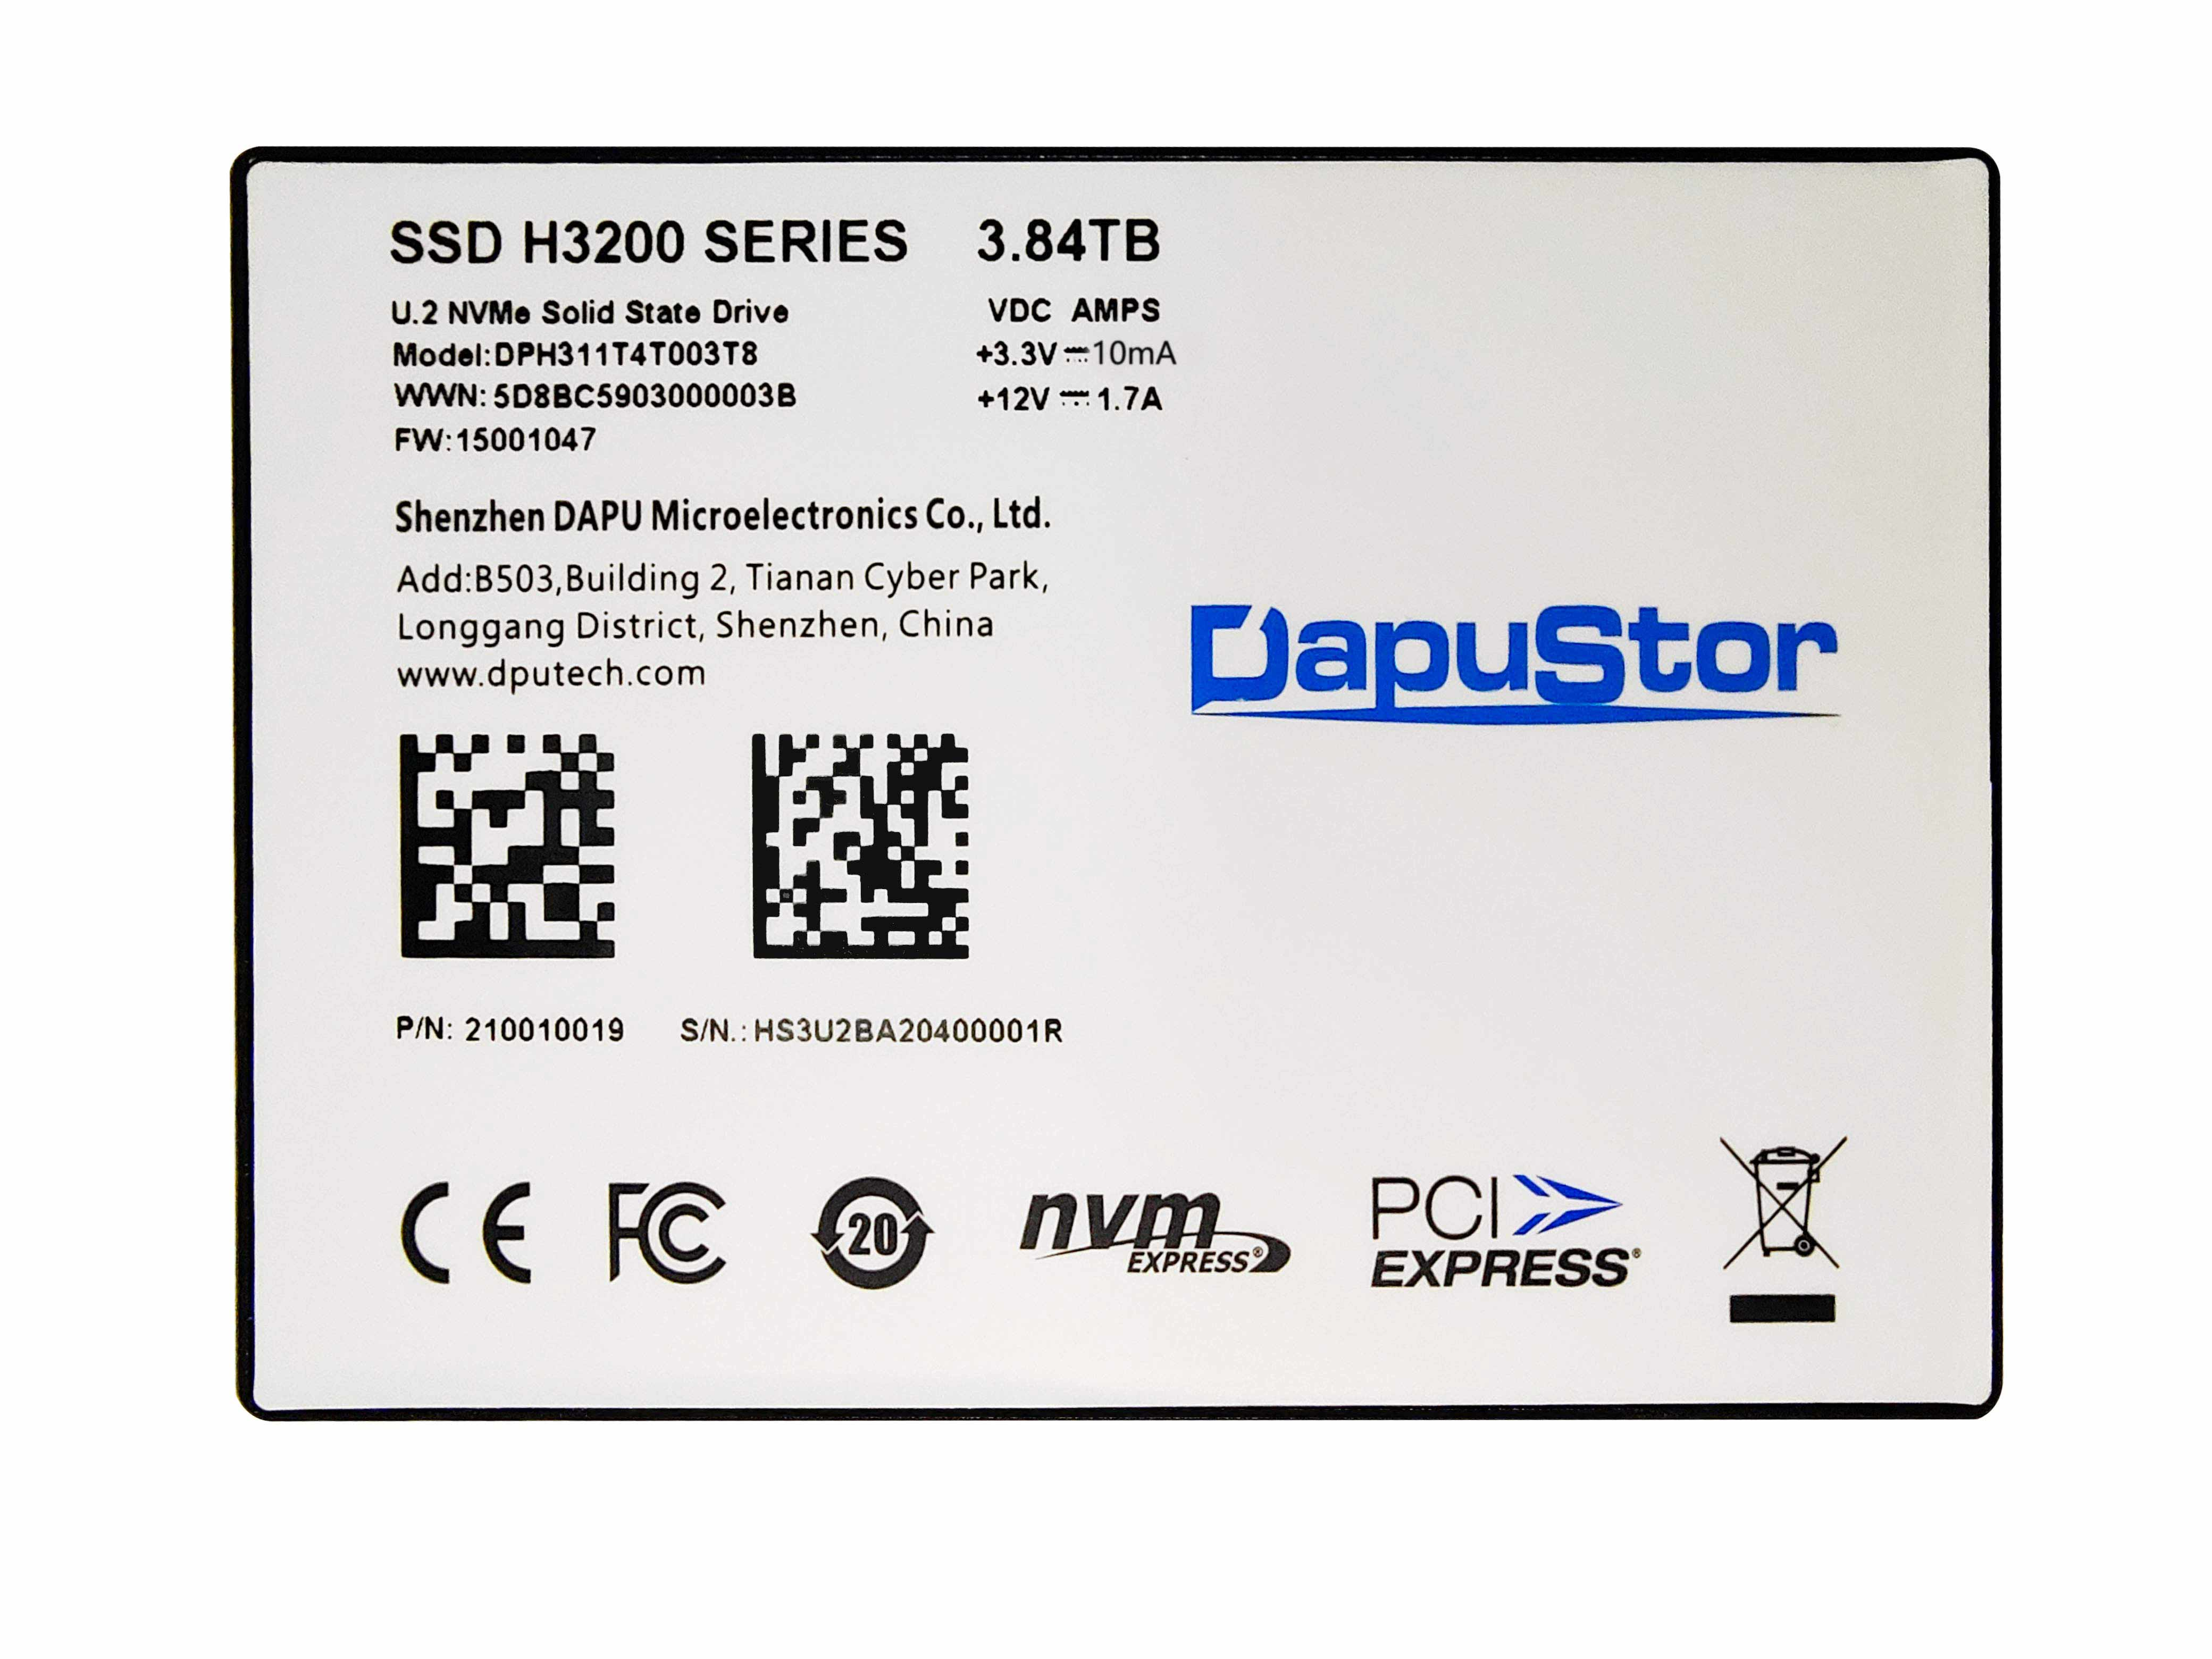 StorageReview - DapuStor Haishen3 H3200 NVMe SSD Review